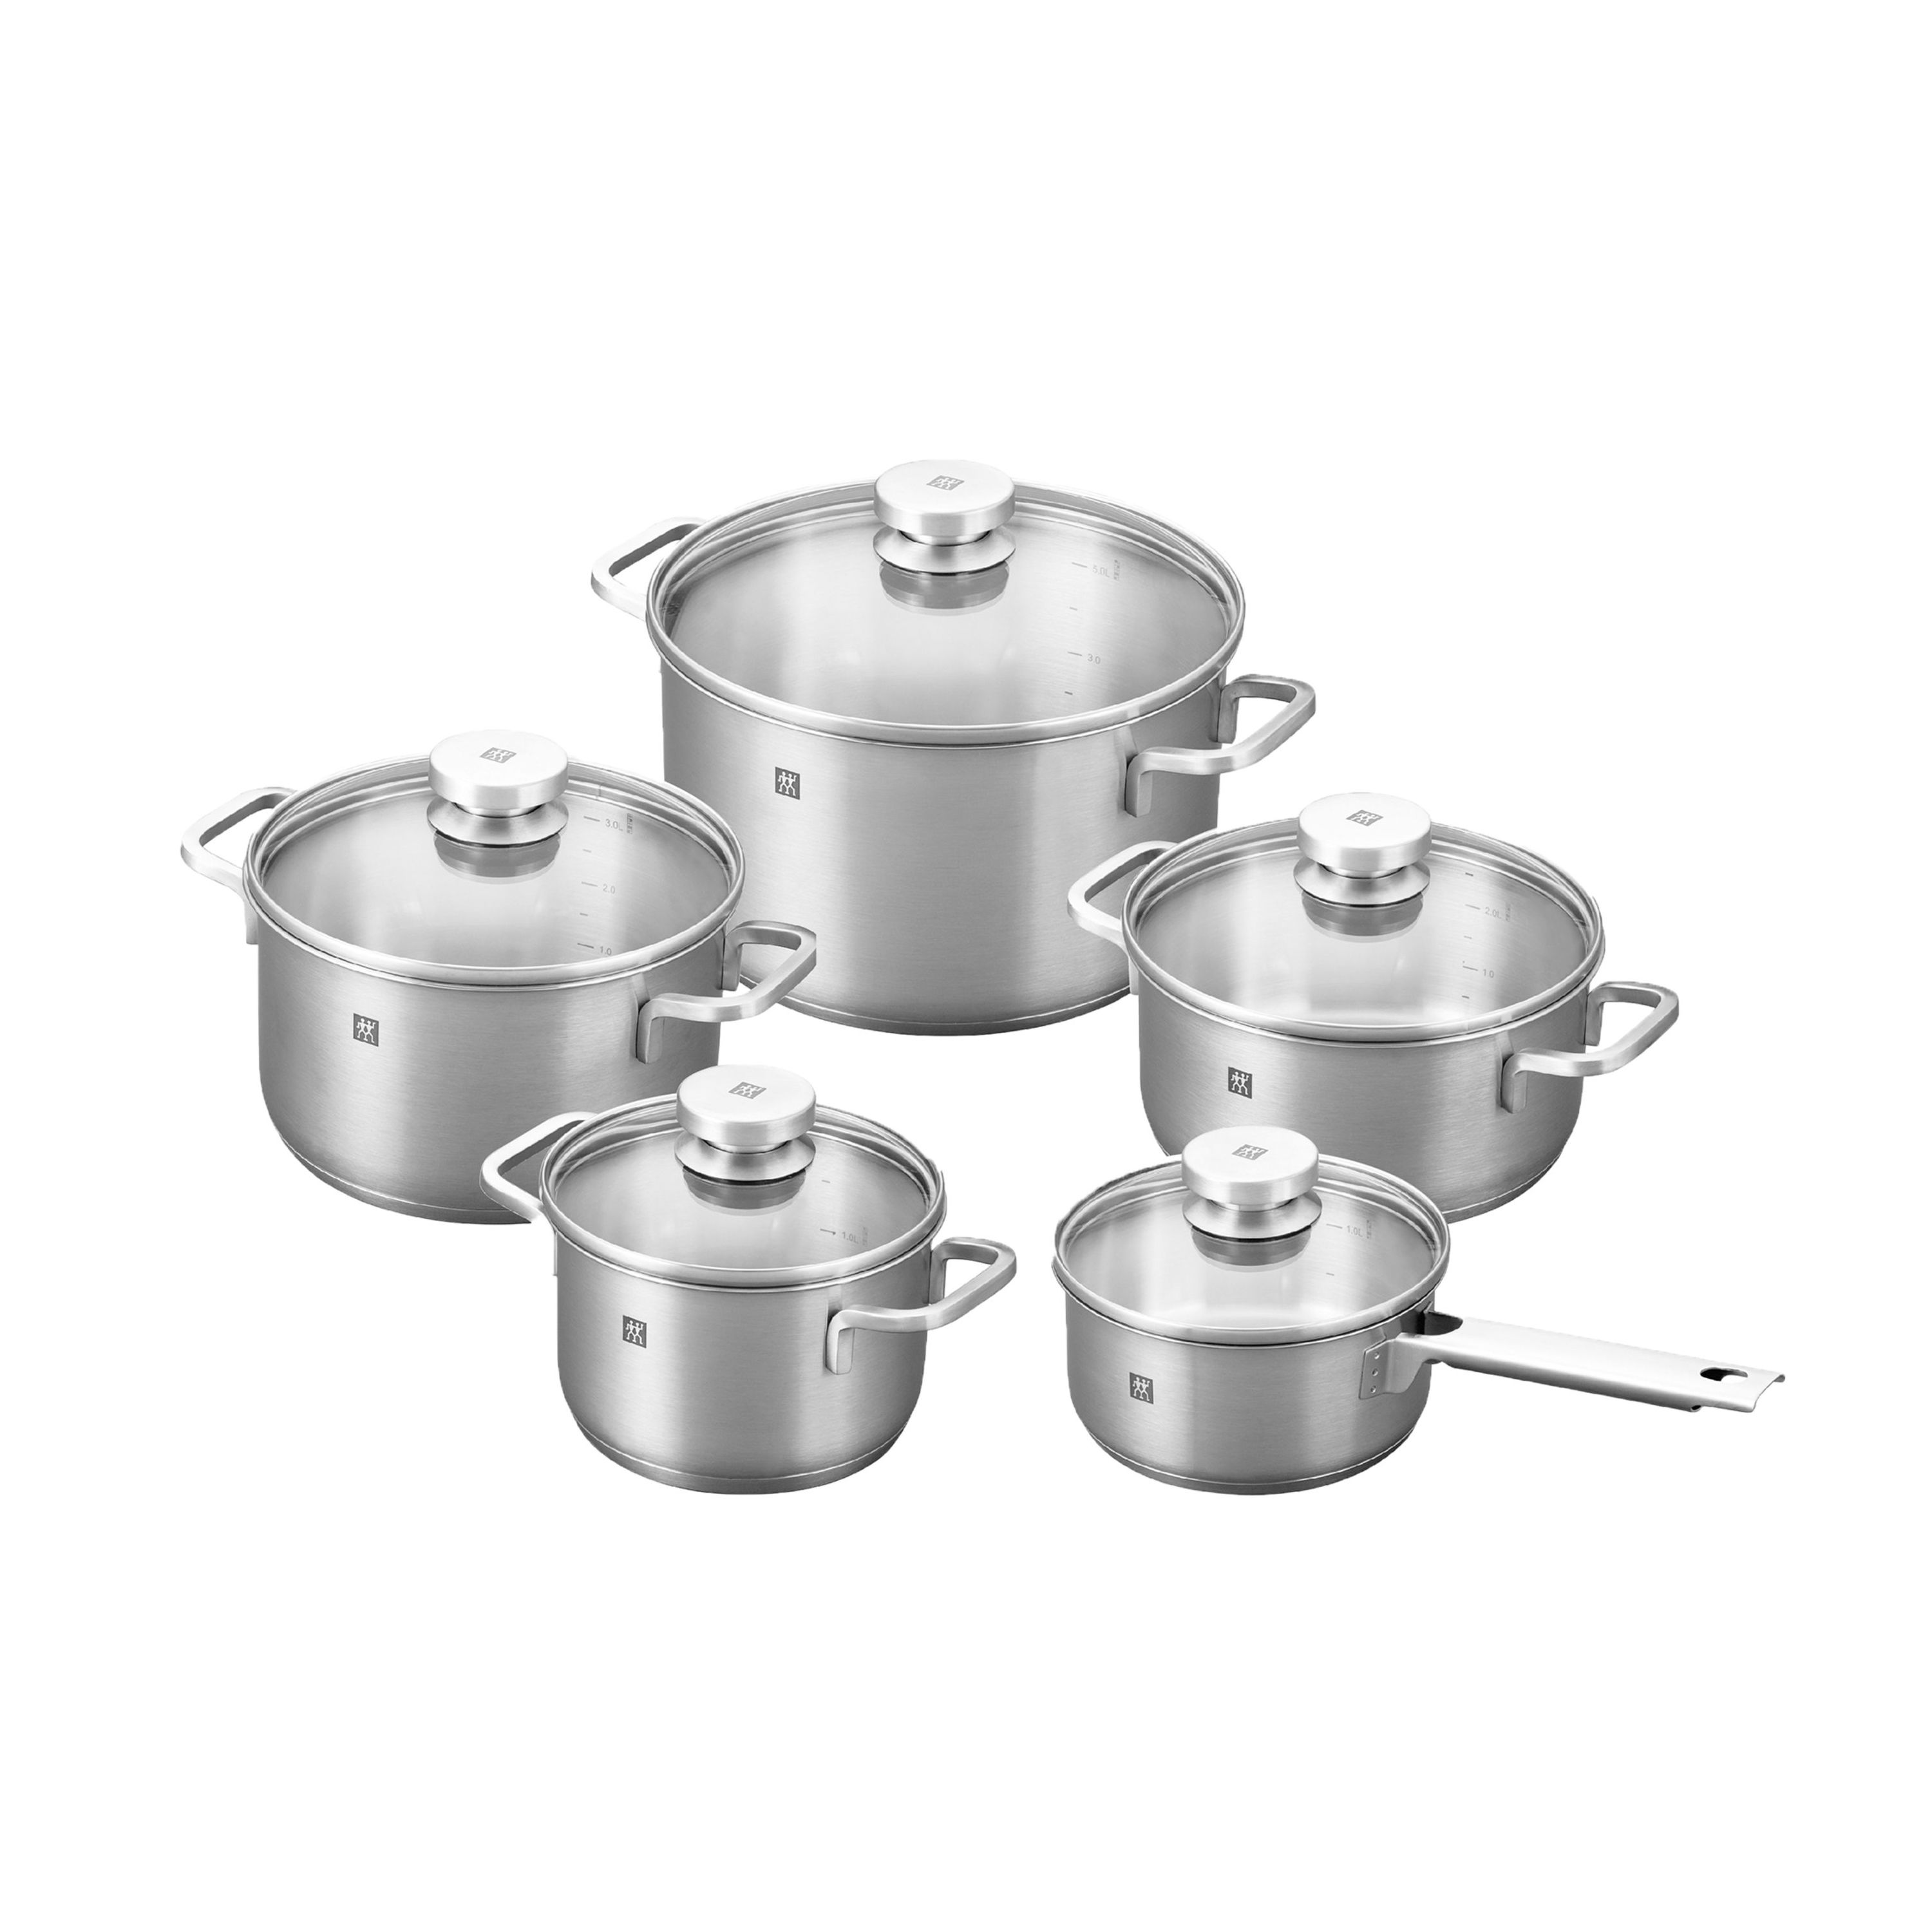 Zwilling Focus 10 Piece Stainless Steel